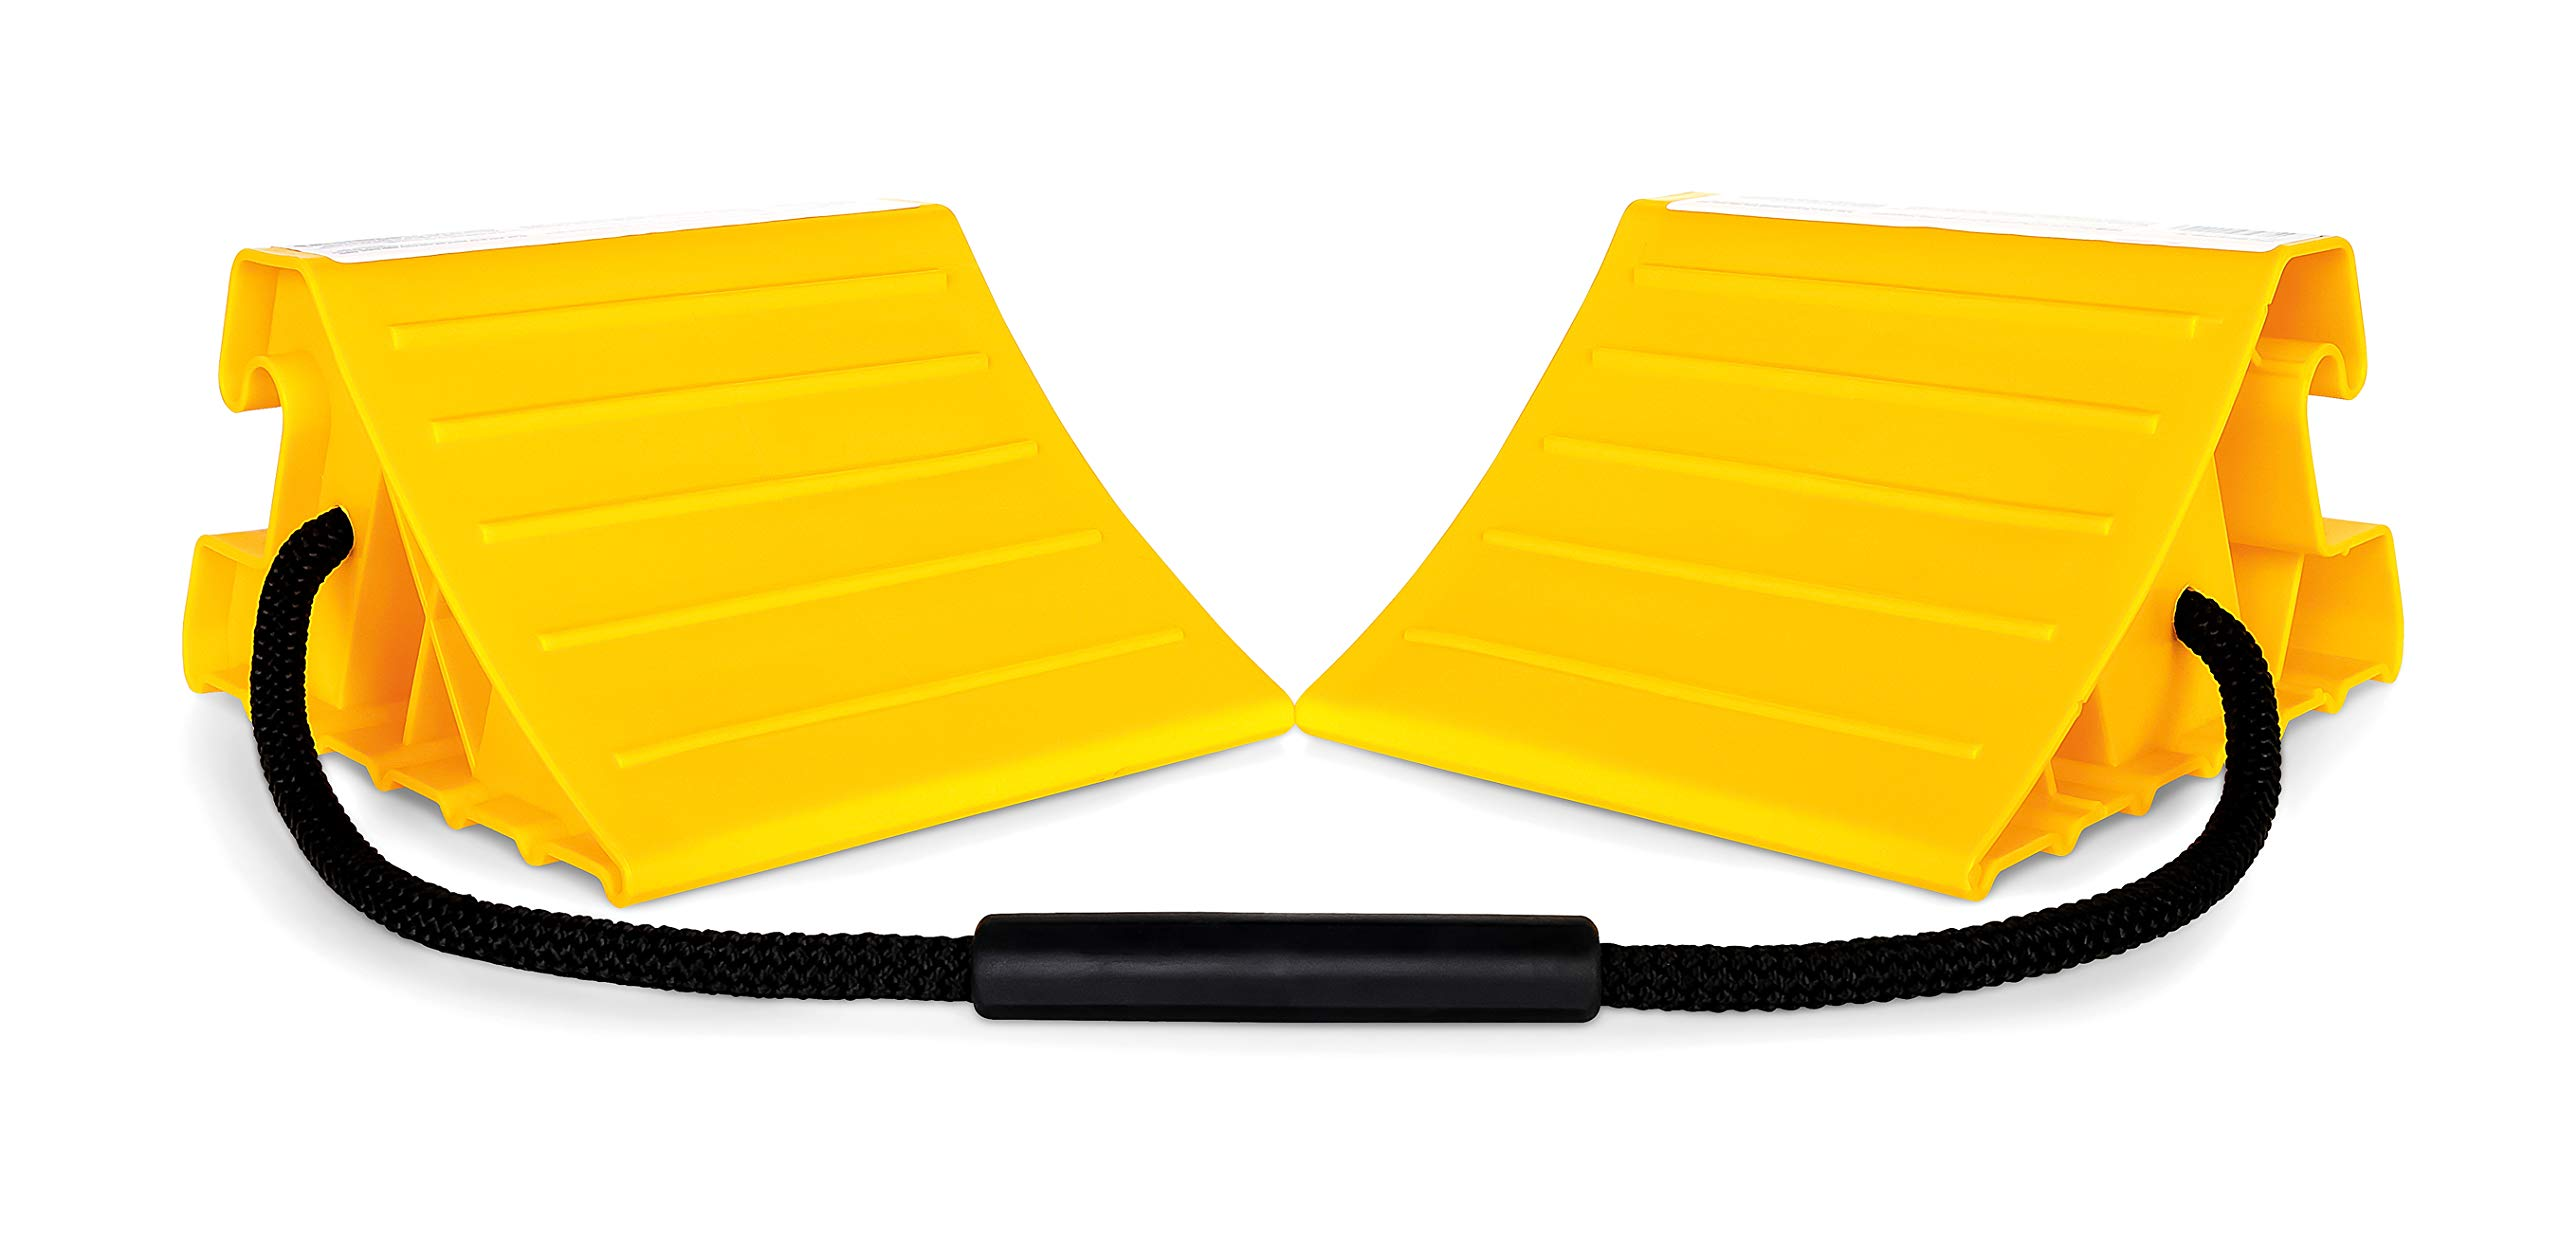 Camco 1 Pack Double Rope - Two Connected Super Wheel Chocks Designed to Keep Your RV or Trailer in Place to Re-Hitch (44477) by Camco